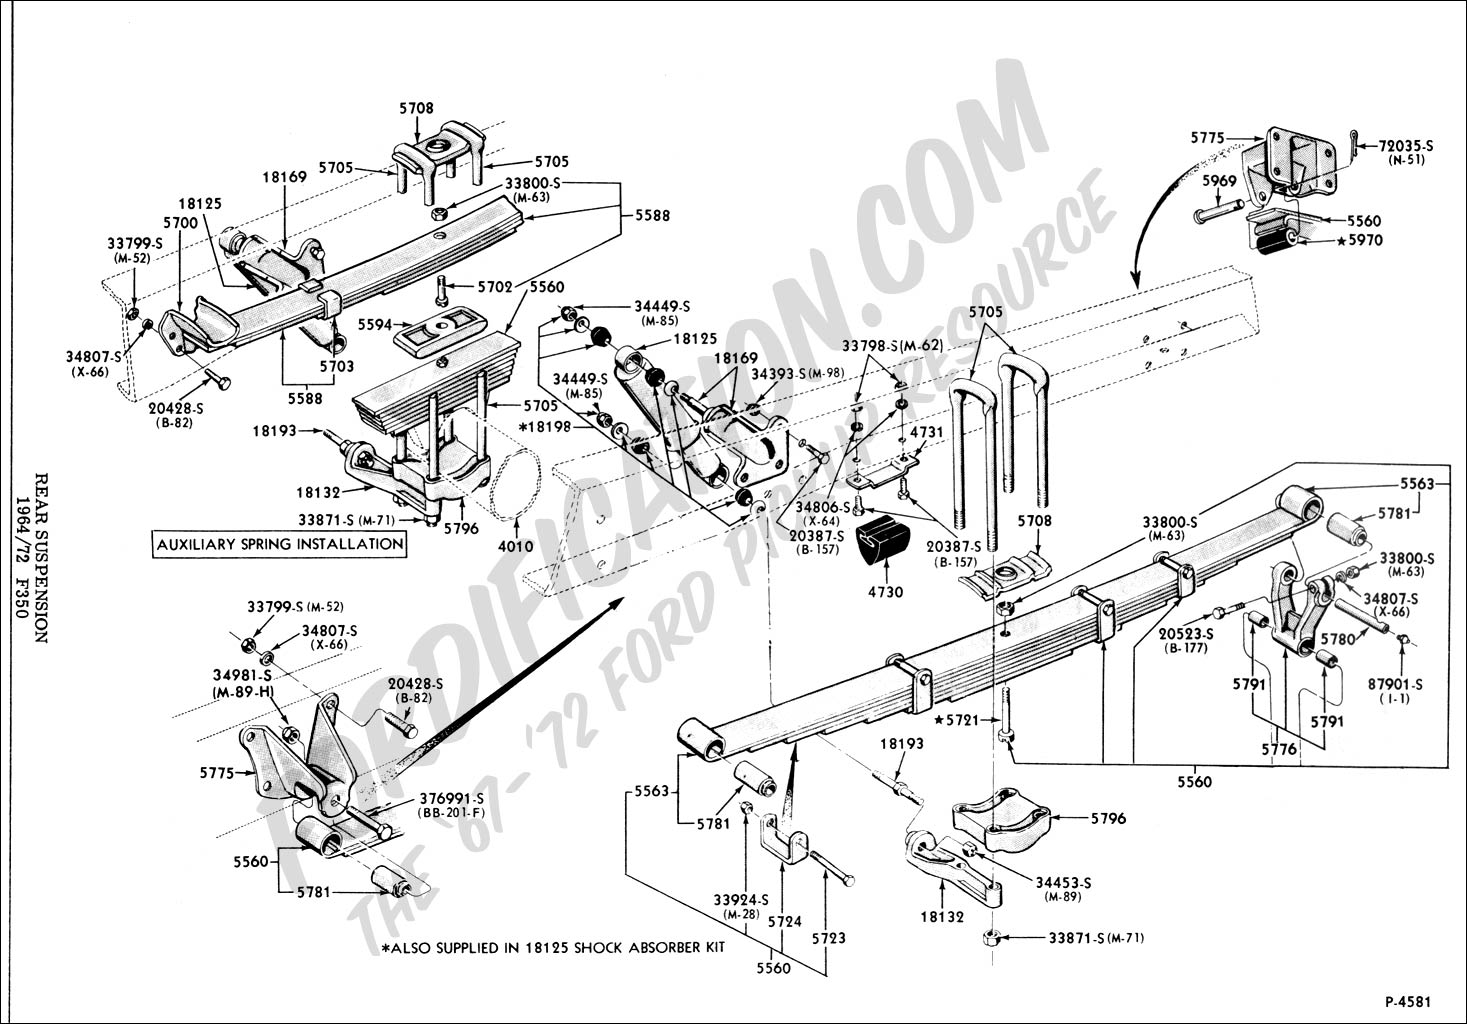 2004 dodge ram 1500 parts diagram basic electrical wiring house 2009 2500 laramie truck front suspension differential for best library